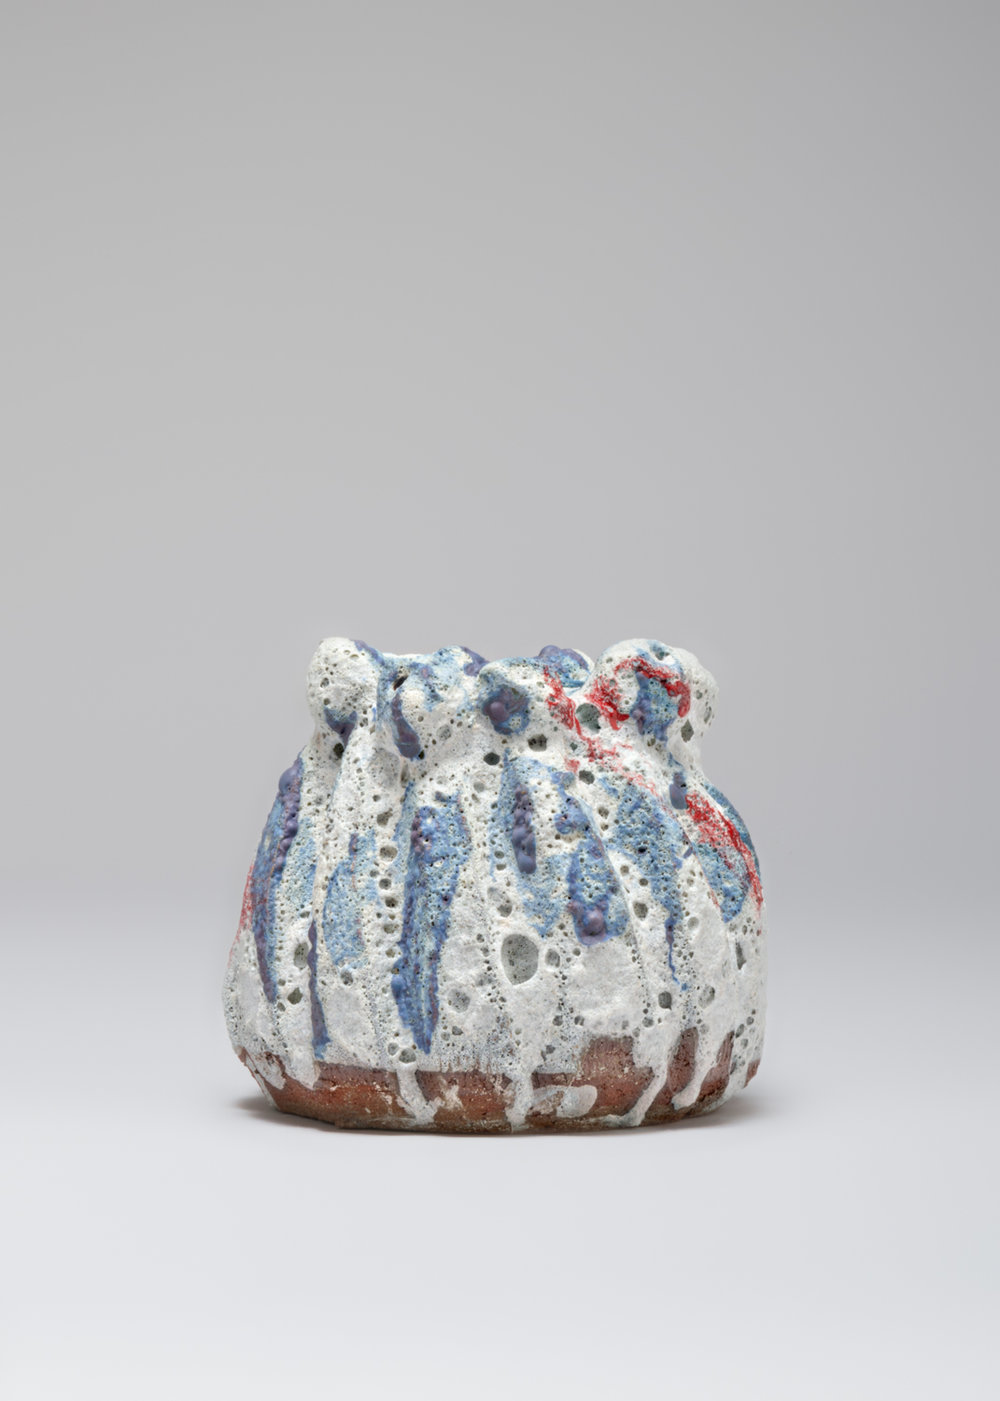 William J. O'Brien  Untitled  2017 Glazed ceramic 7 ½h x 6 ½w x 7 ¼d in WOB1220